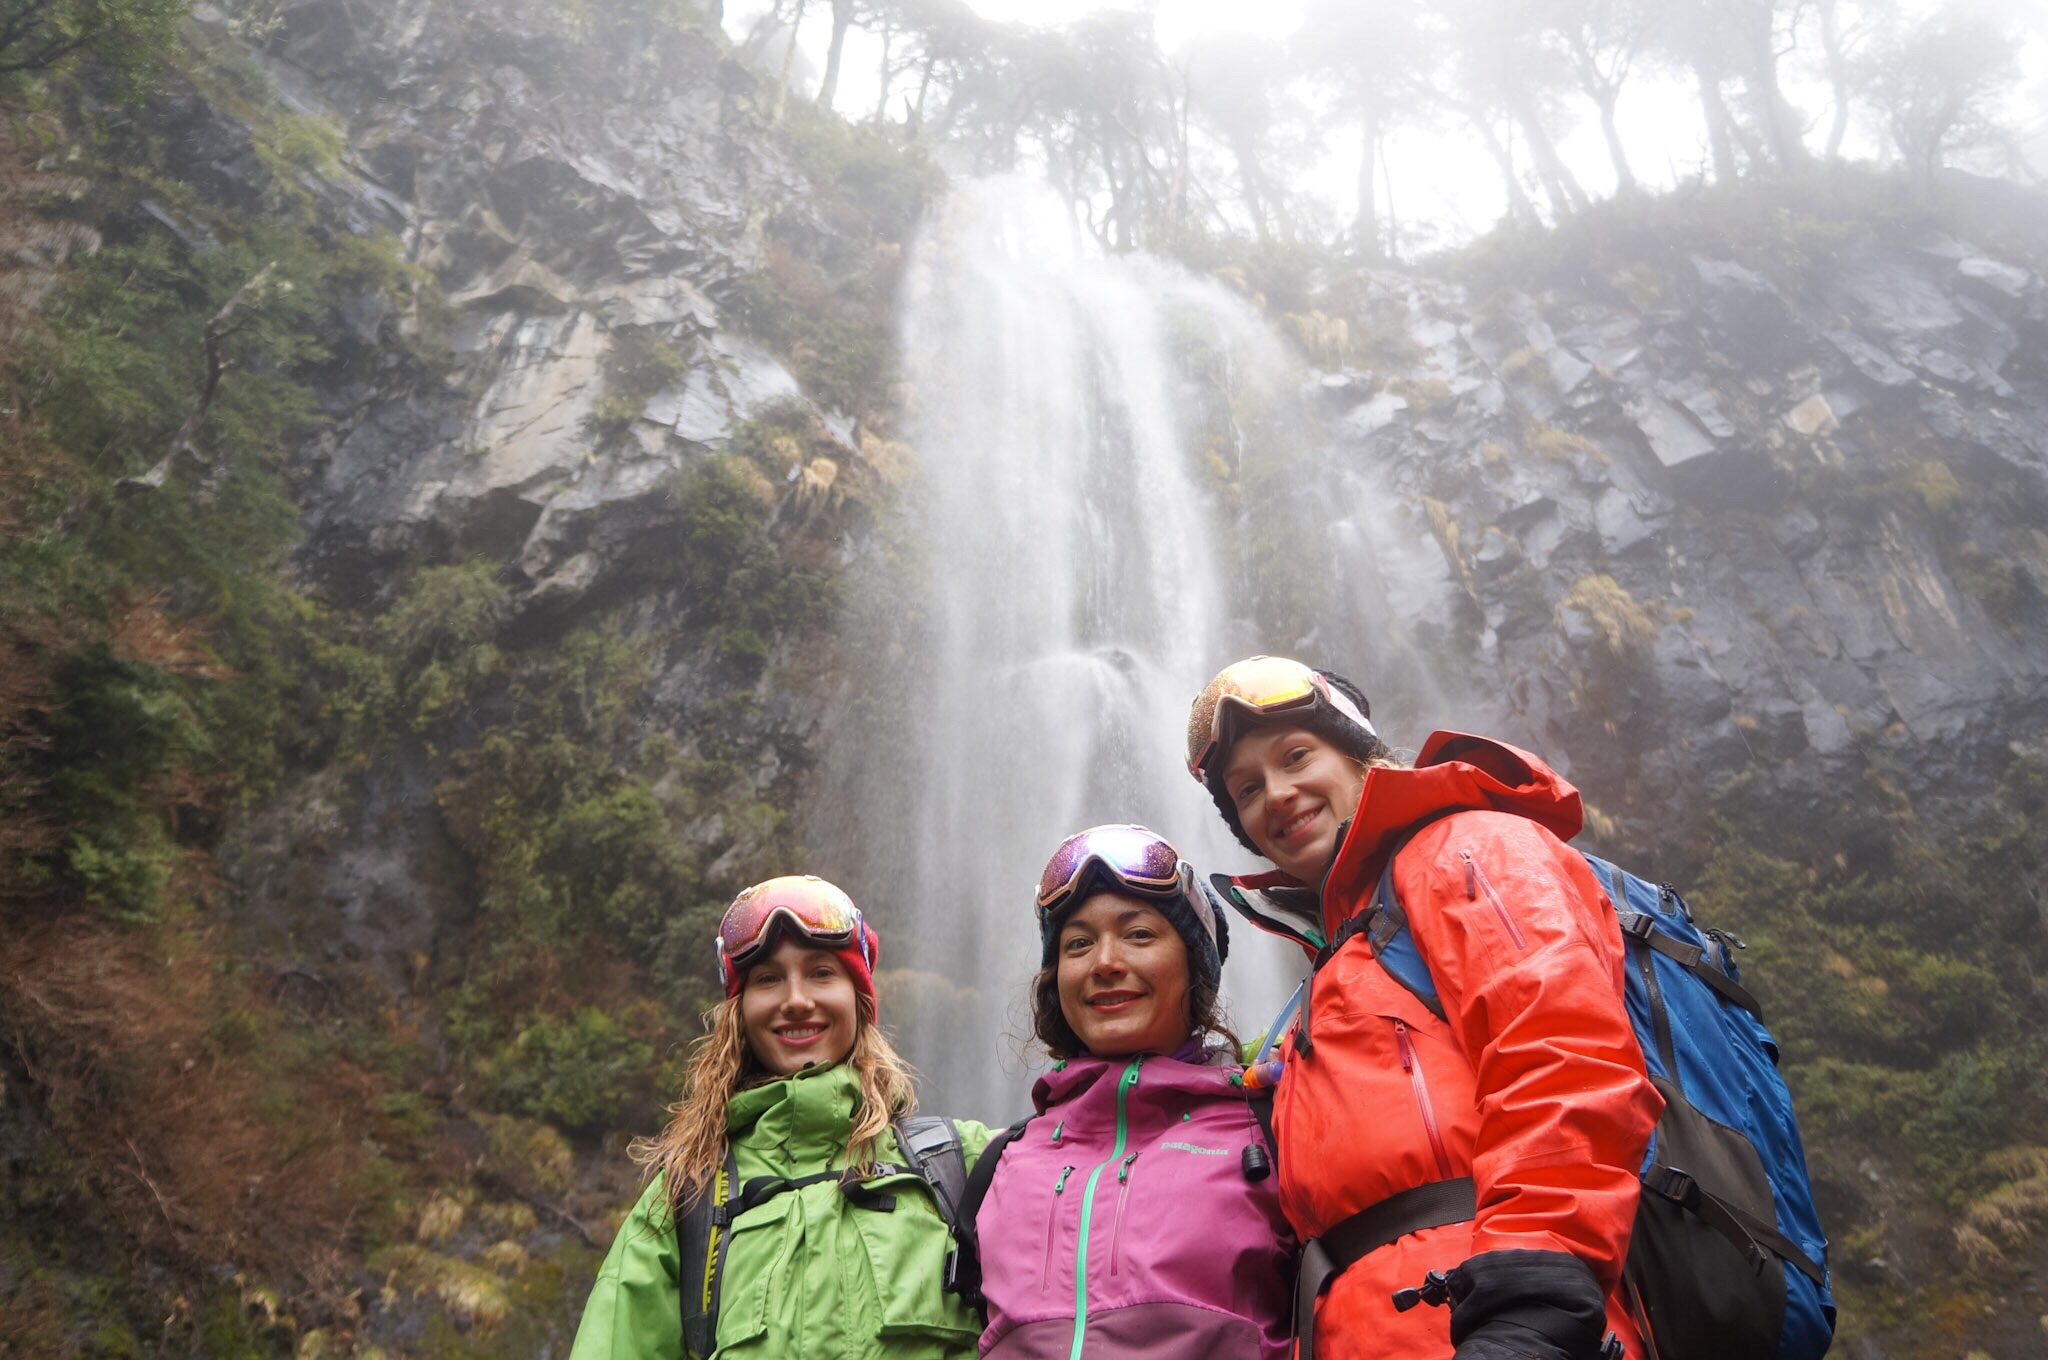 Checking out a waterfall on a wet day in the Andes.